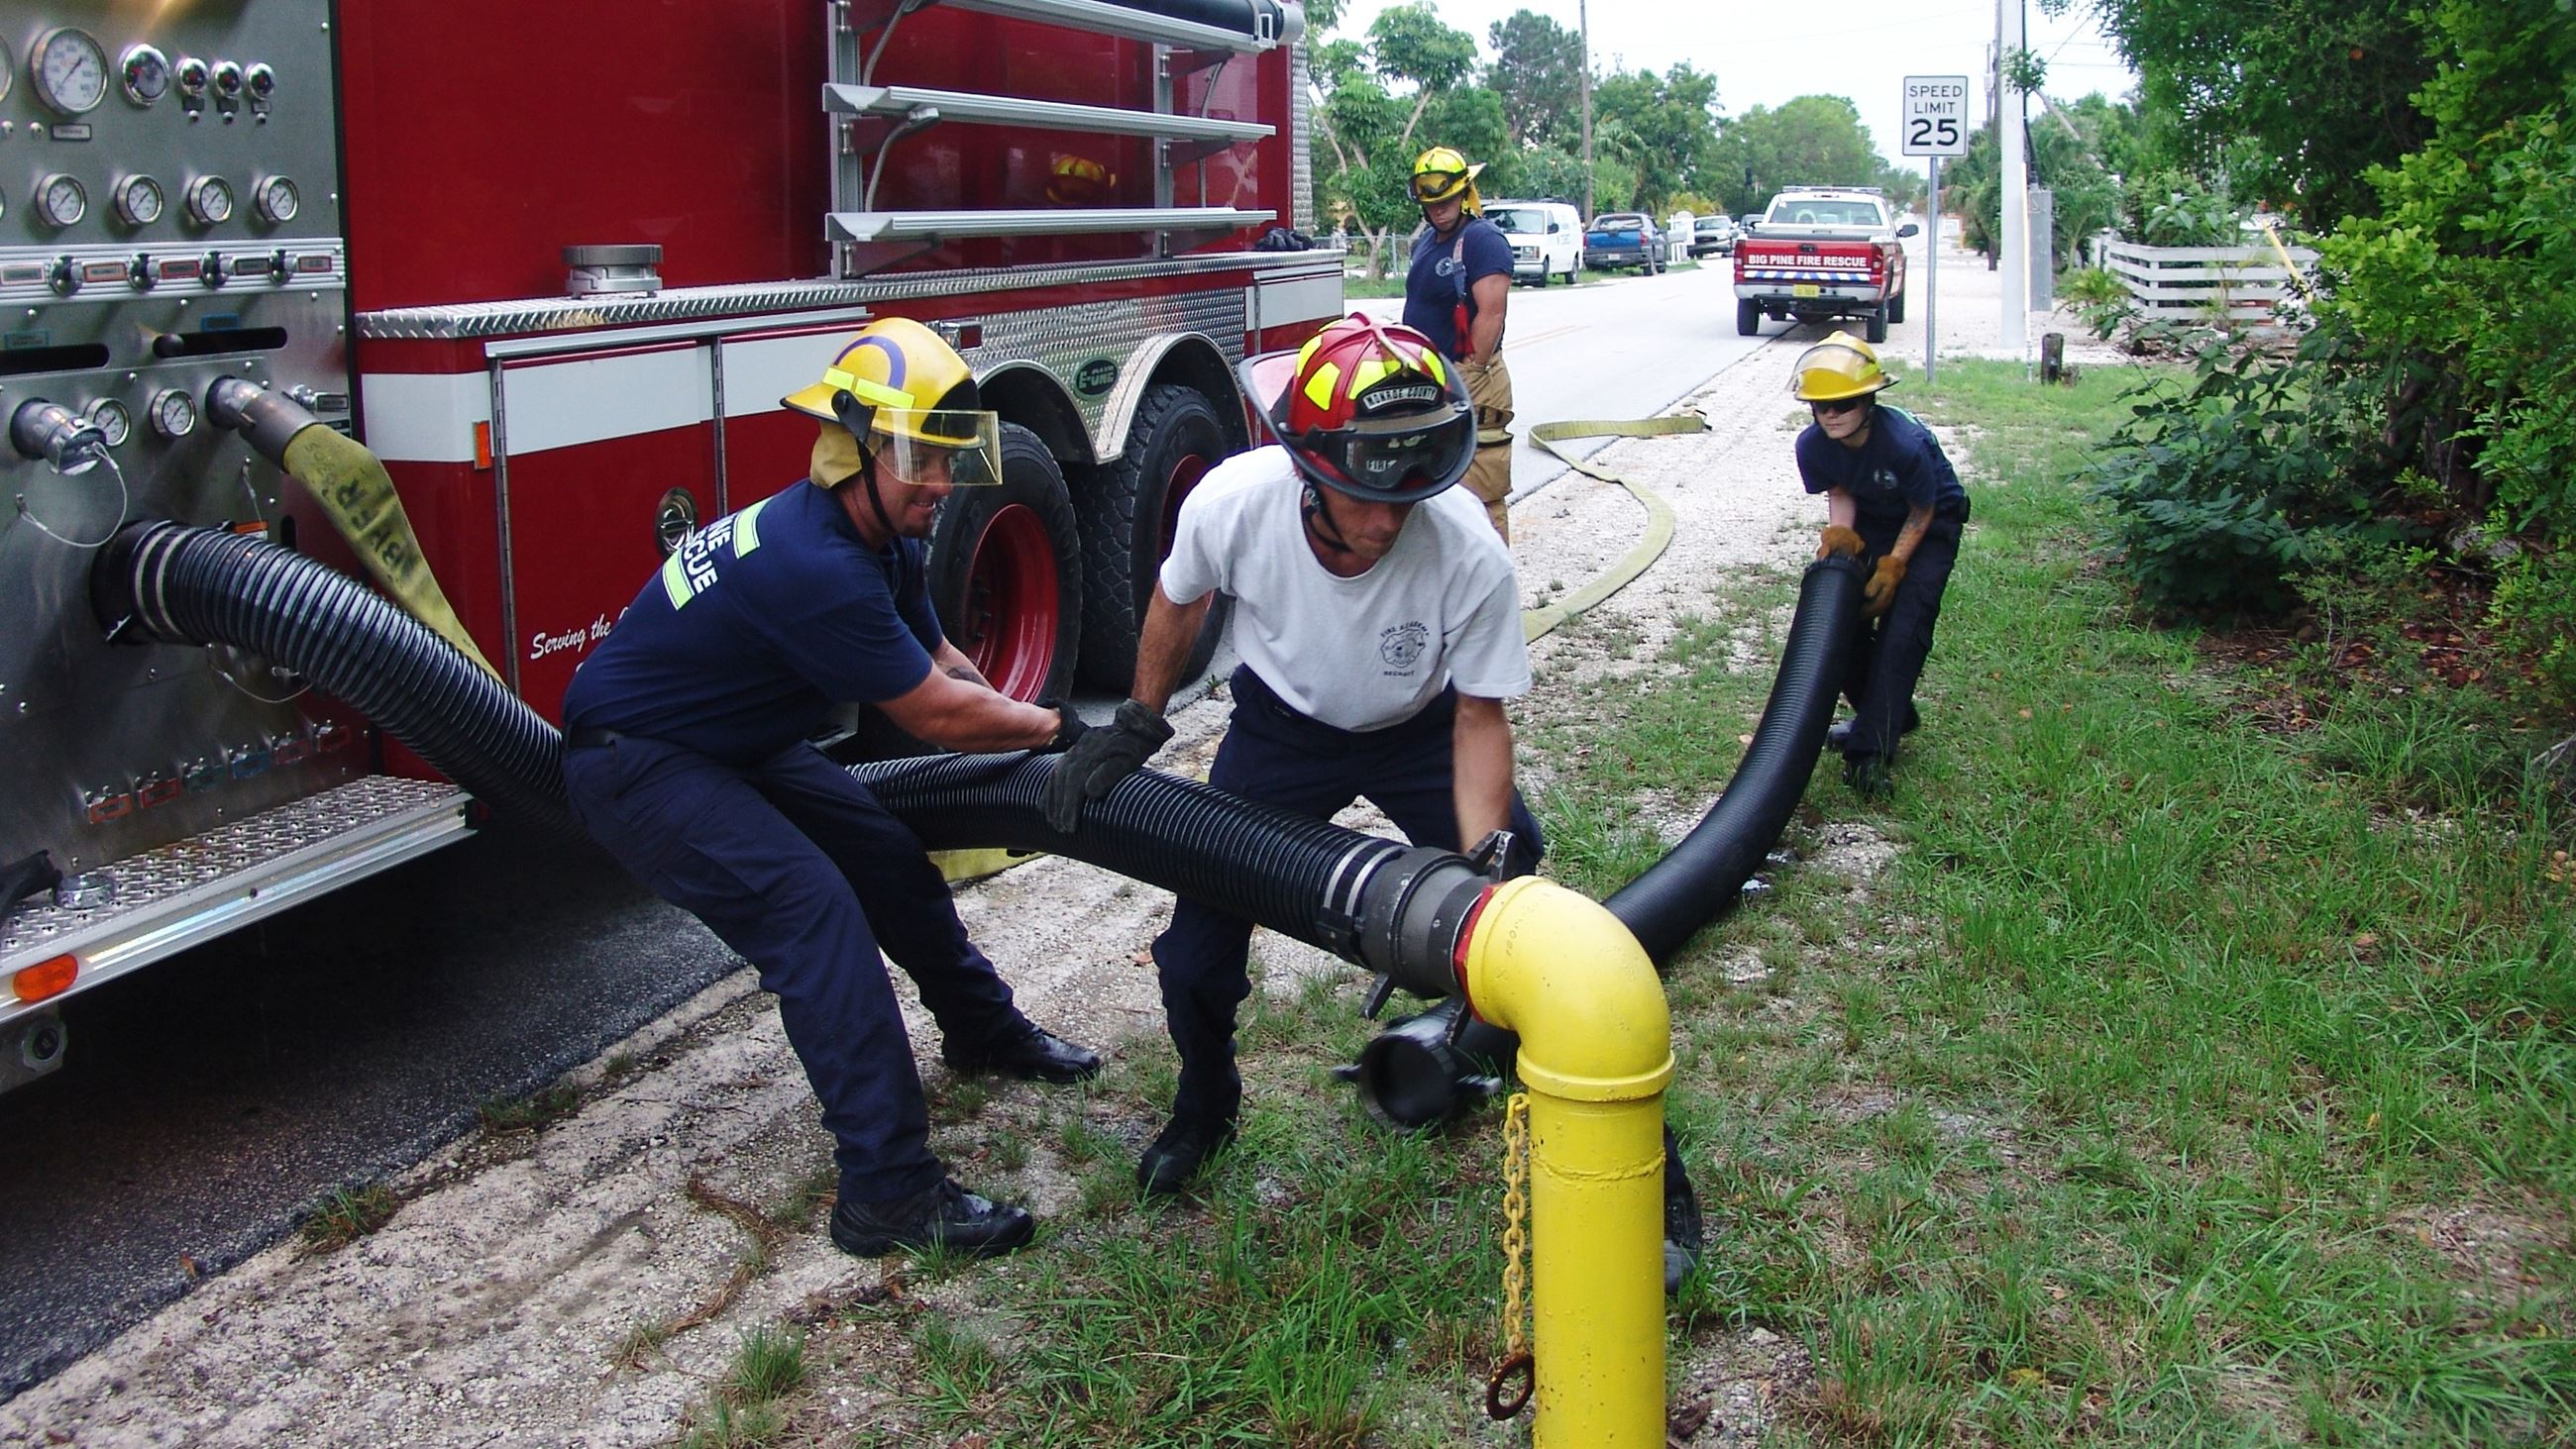 Volunteer Training - Using Water Hose